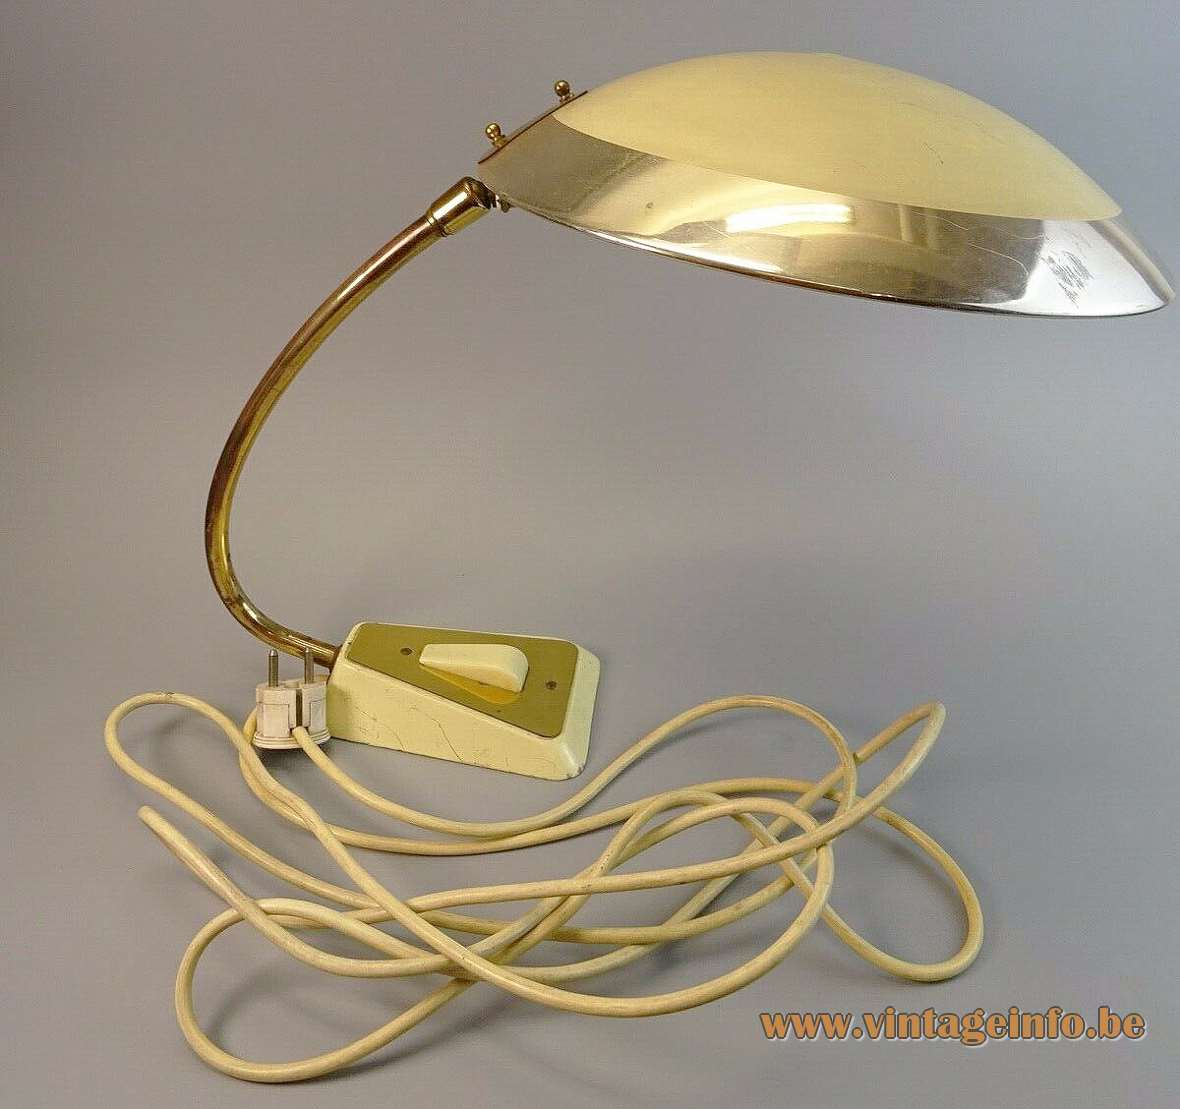 Helo Leuchten brass desk lamp cream cast iron trapezoid base curved rod mushroom lampshade 1950s 1960s